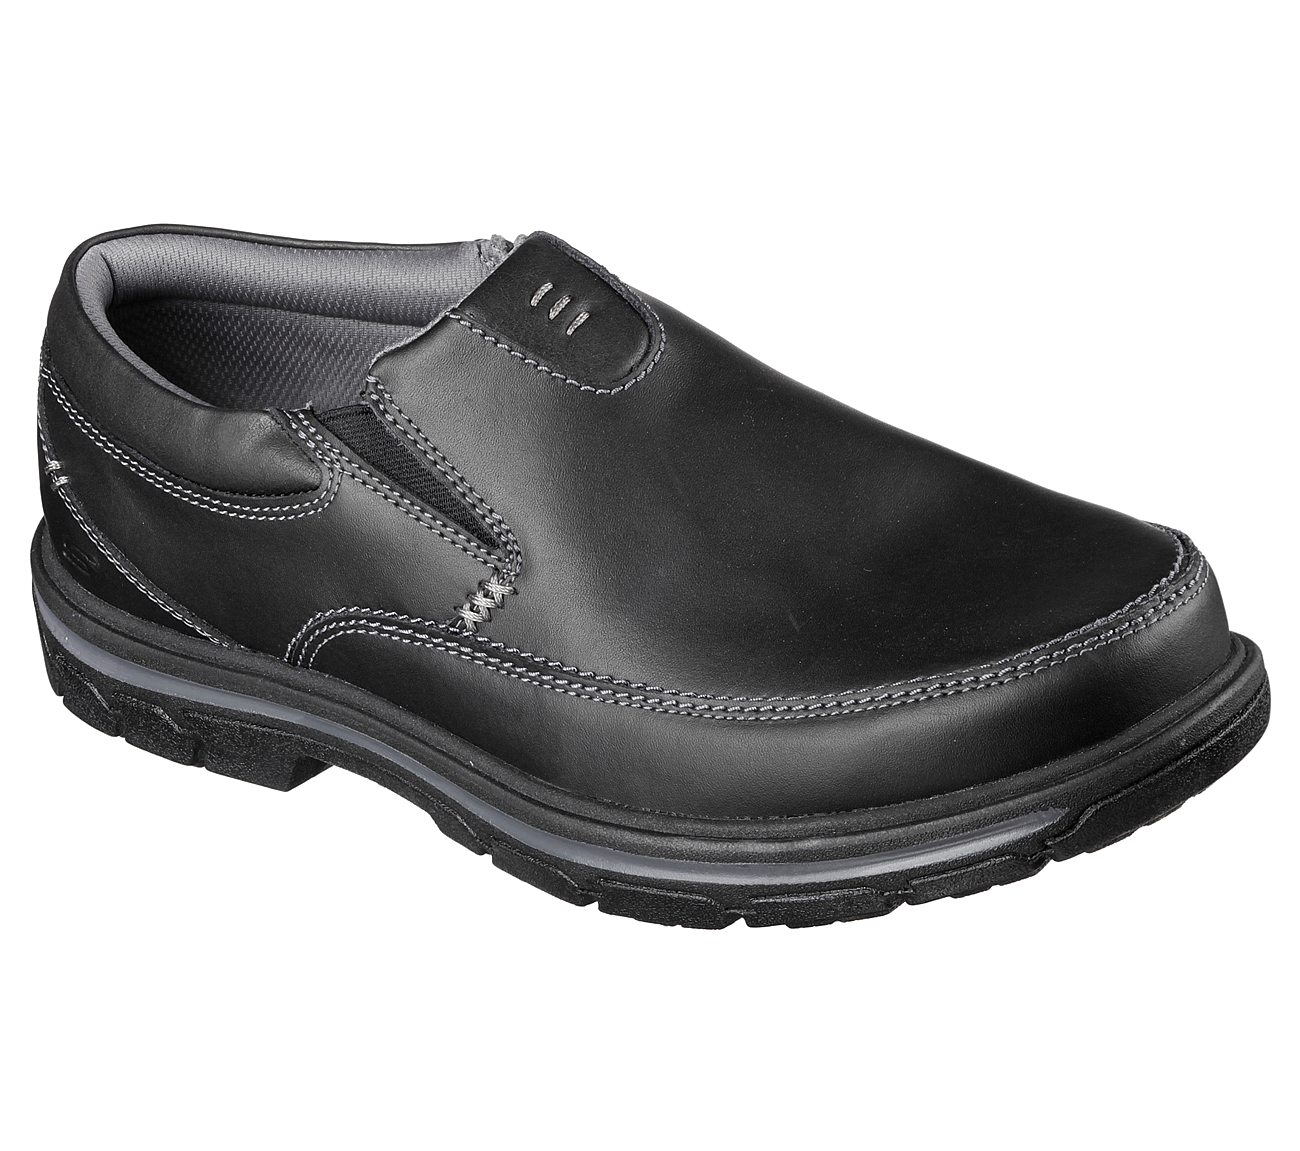 Skechers All Black Leather Shoes